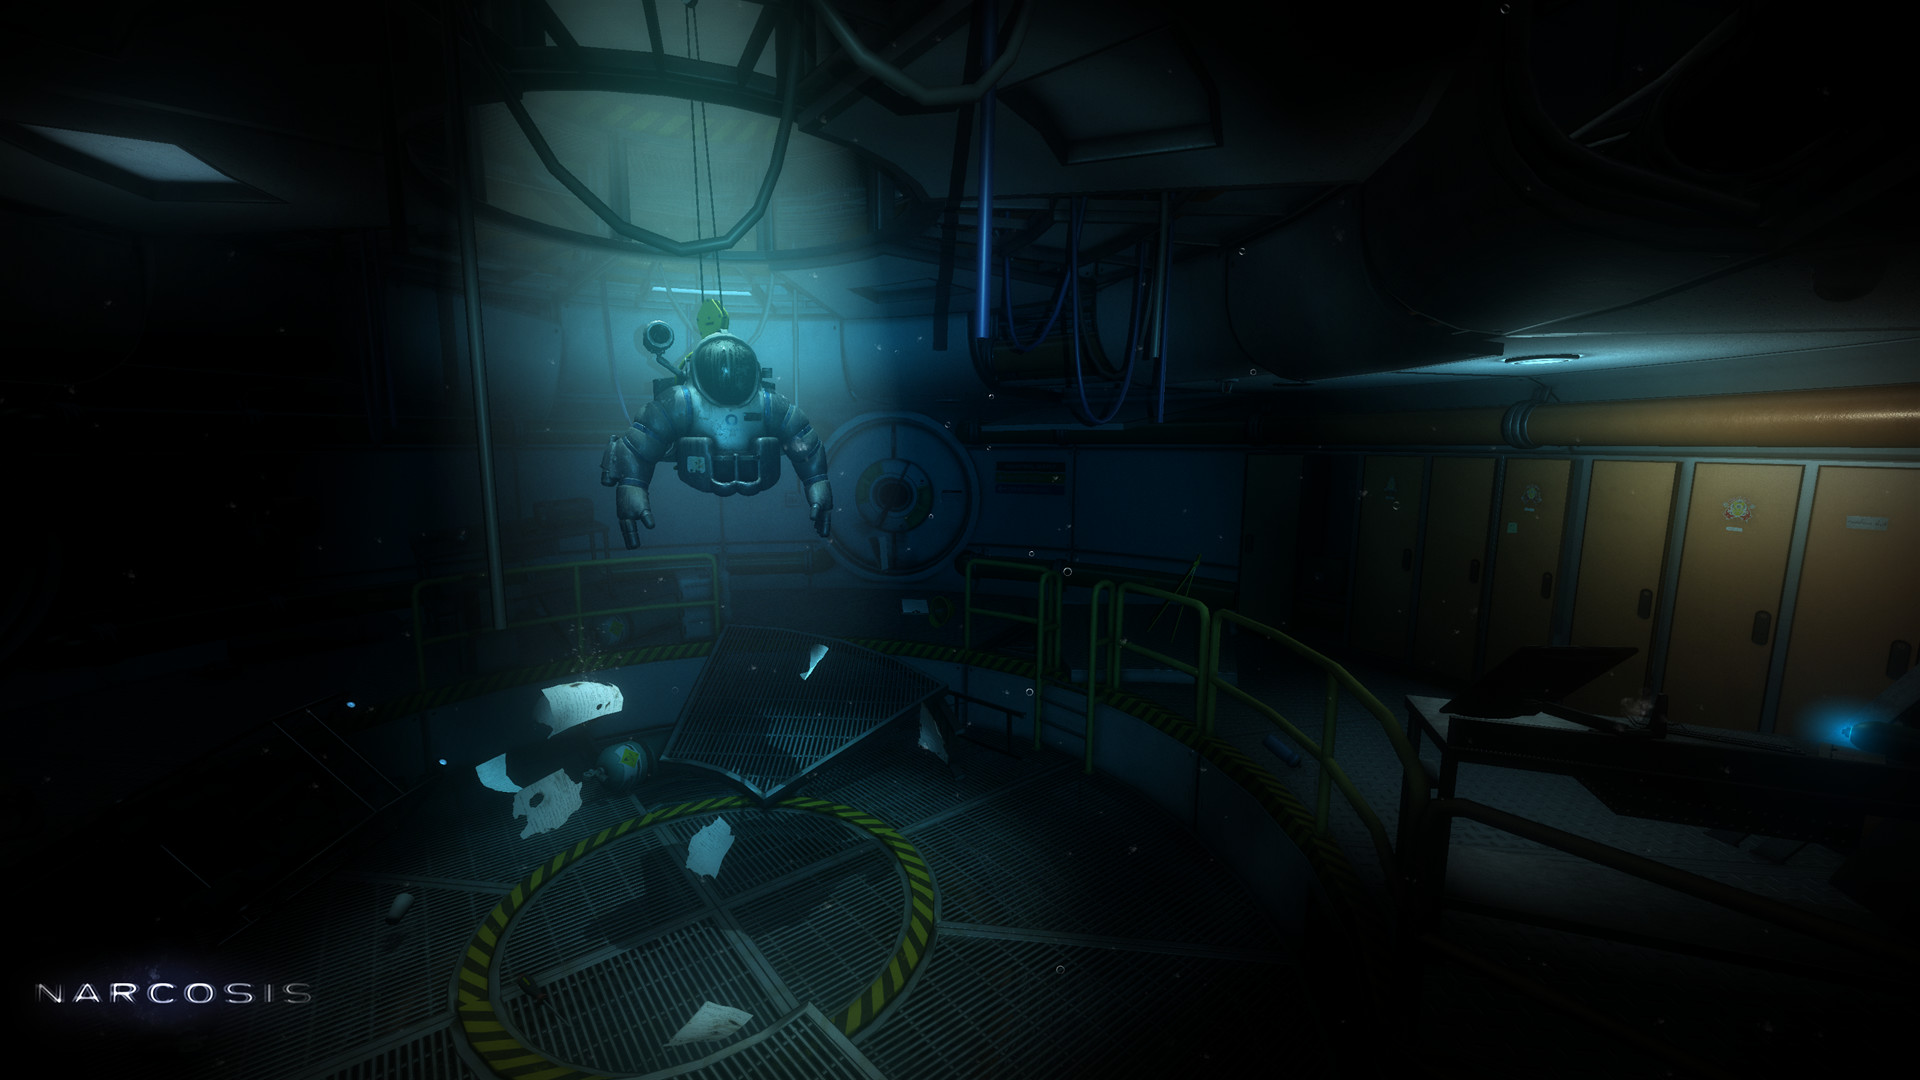 Narcosis Features